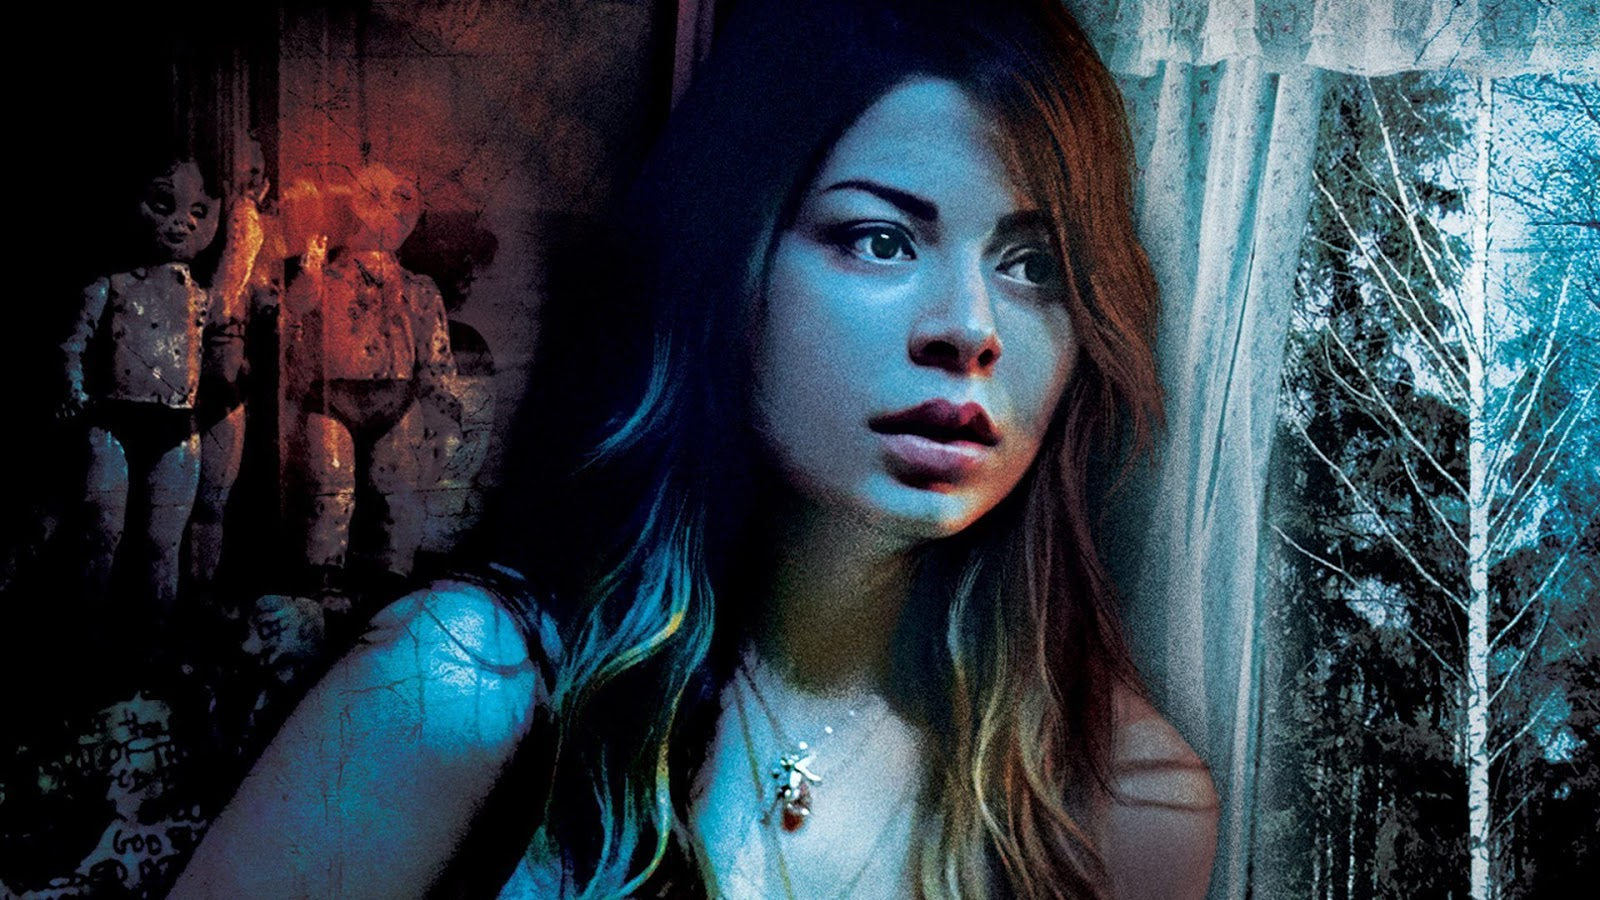 REVIEW: The Intruders (A Casa do Medo) com Miranda Cosgrove